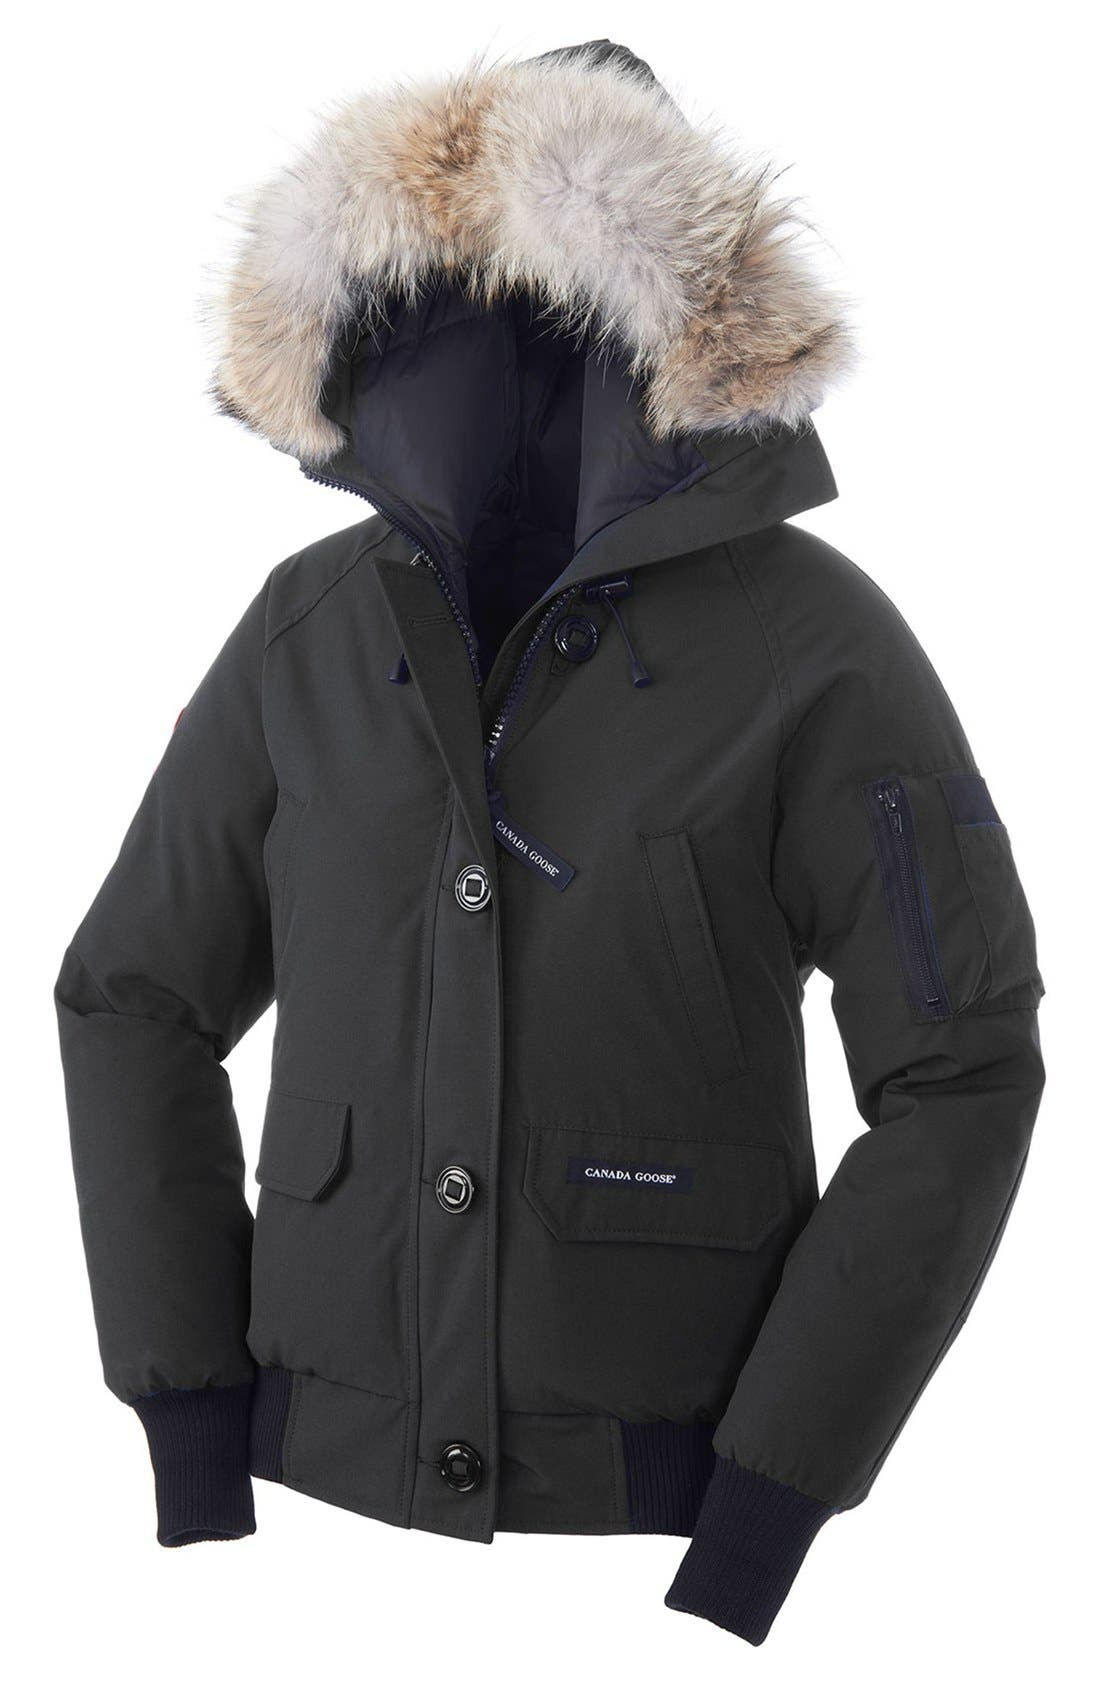 Black friday winter jacket sale canada